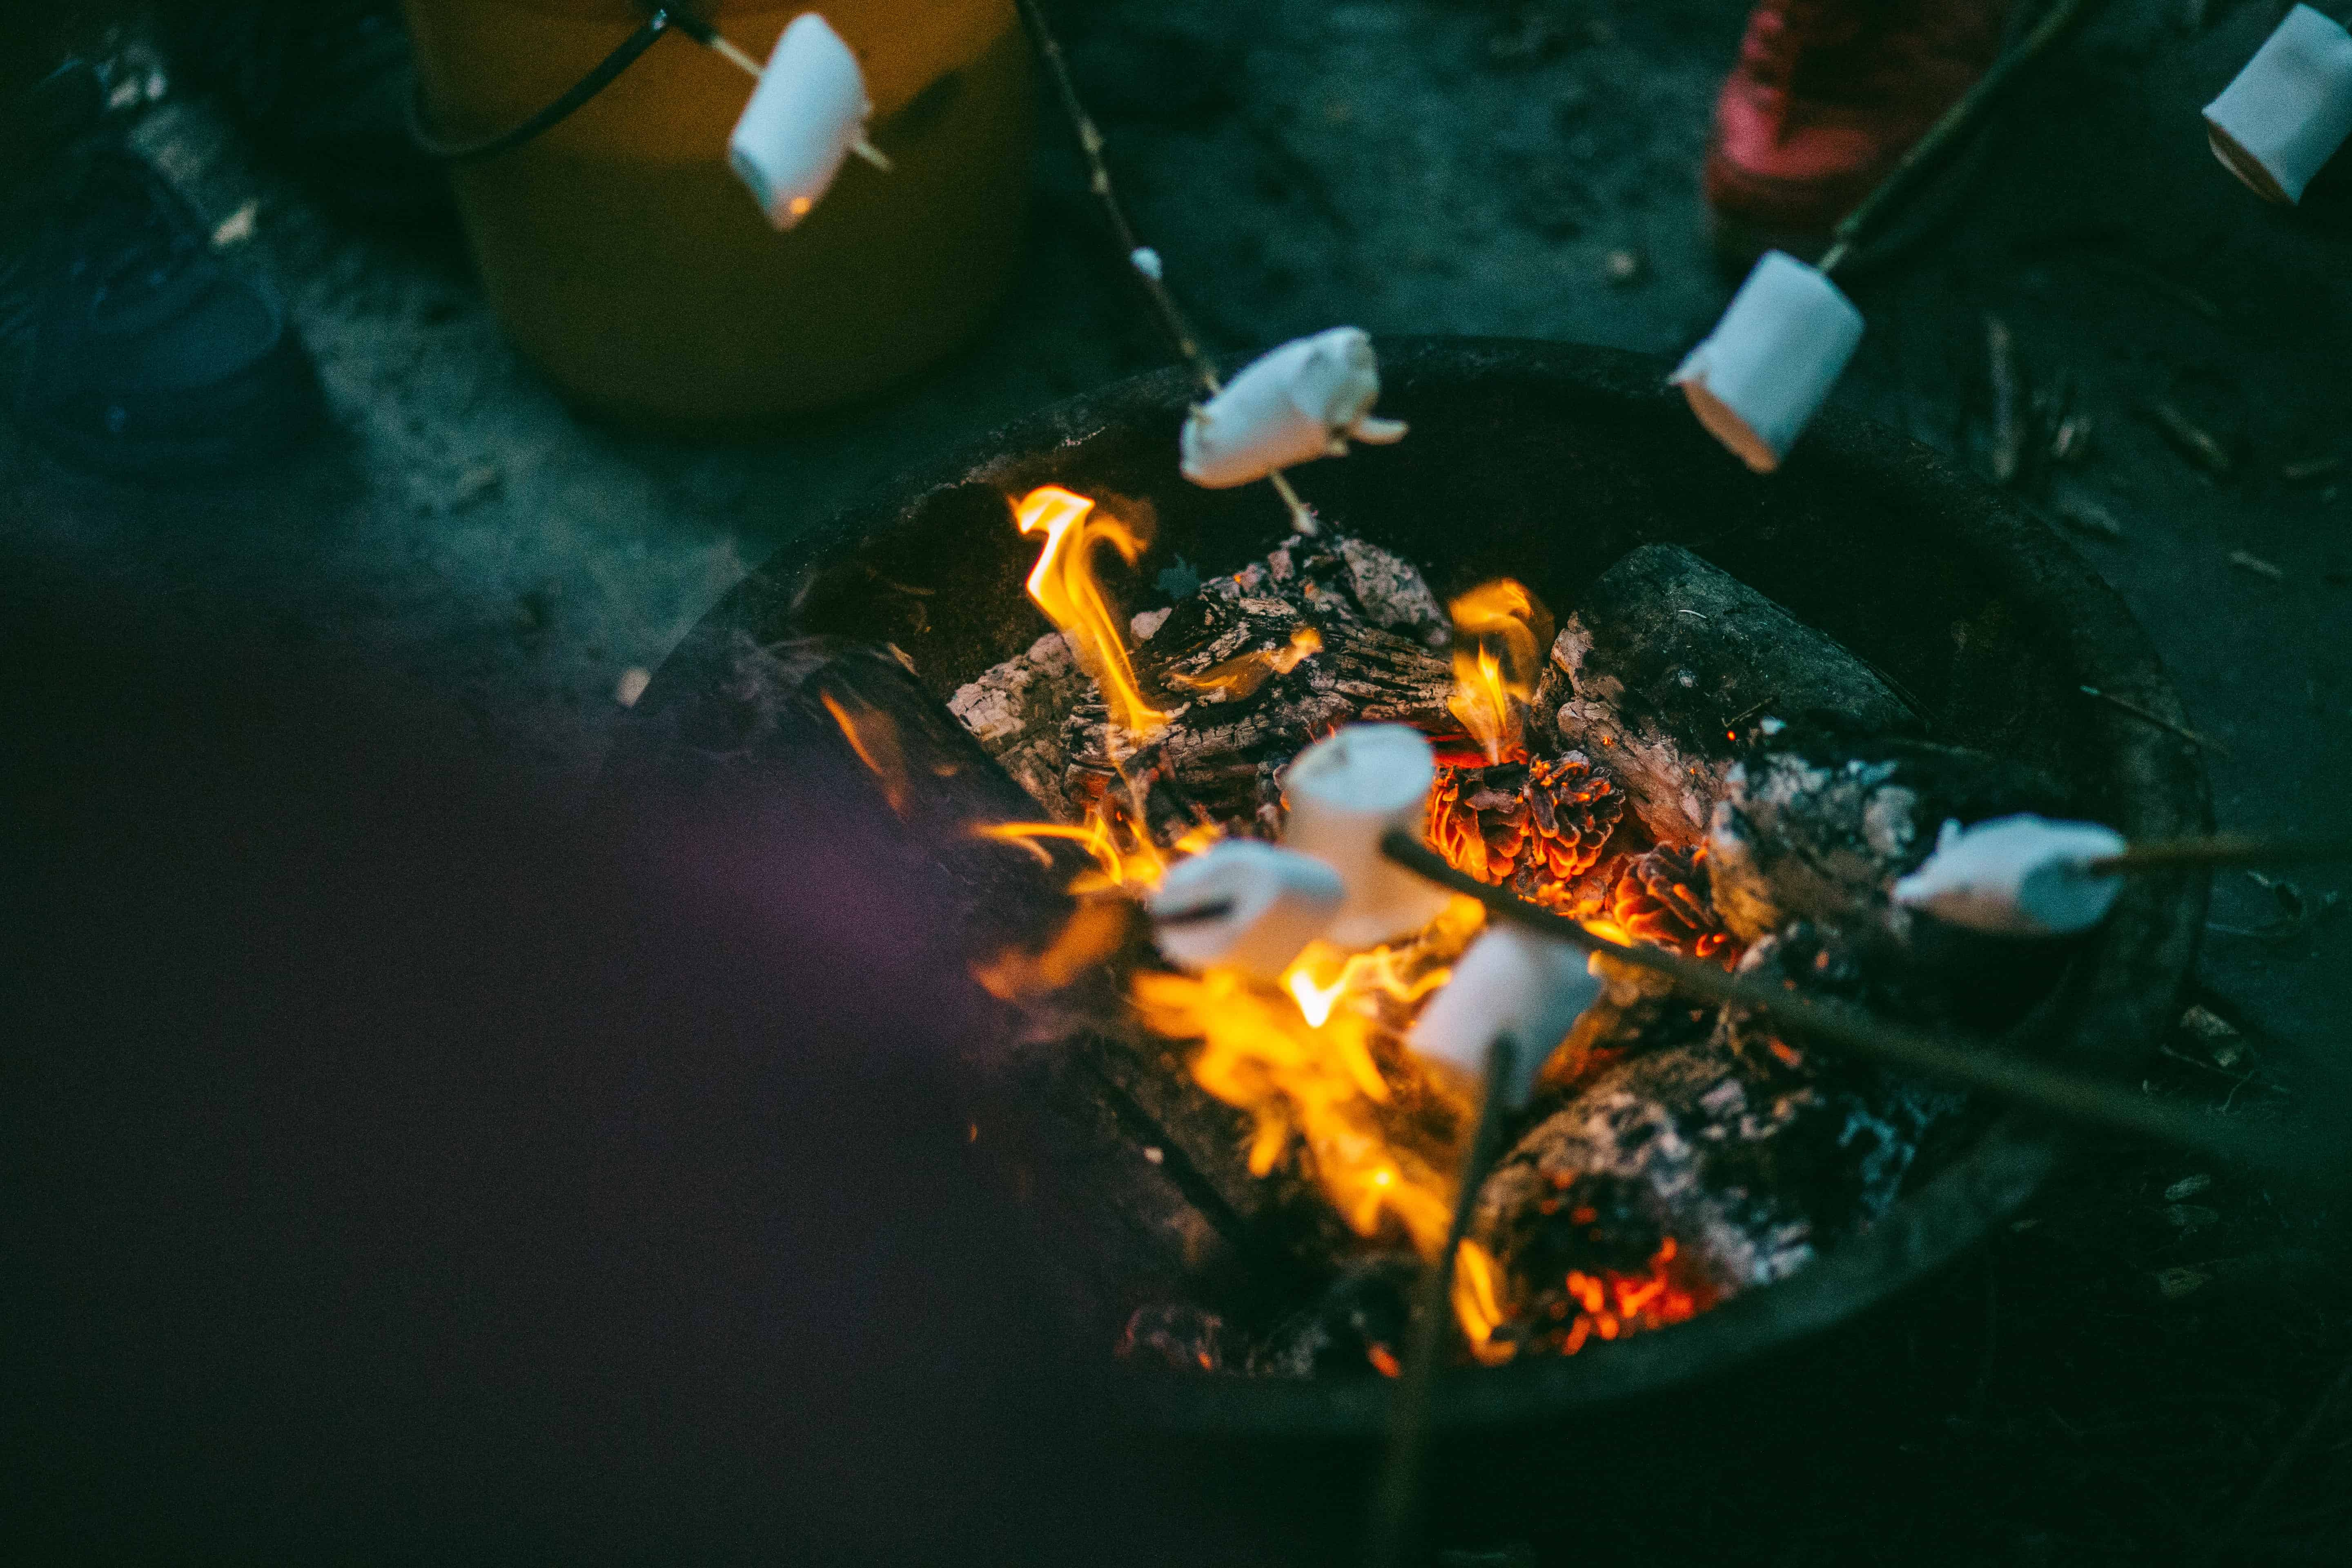 roasting s'mores by the fire- a holiday tradition